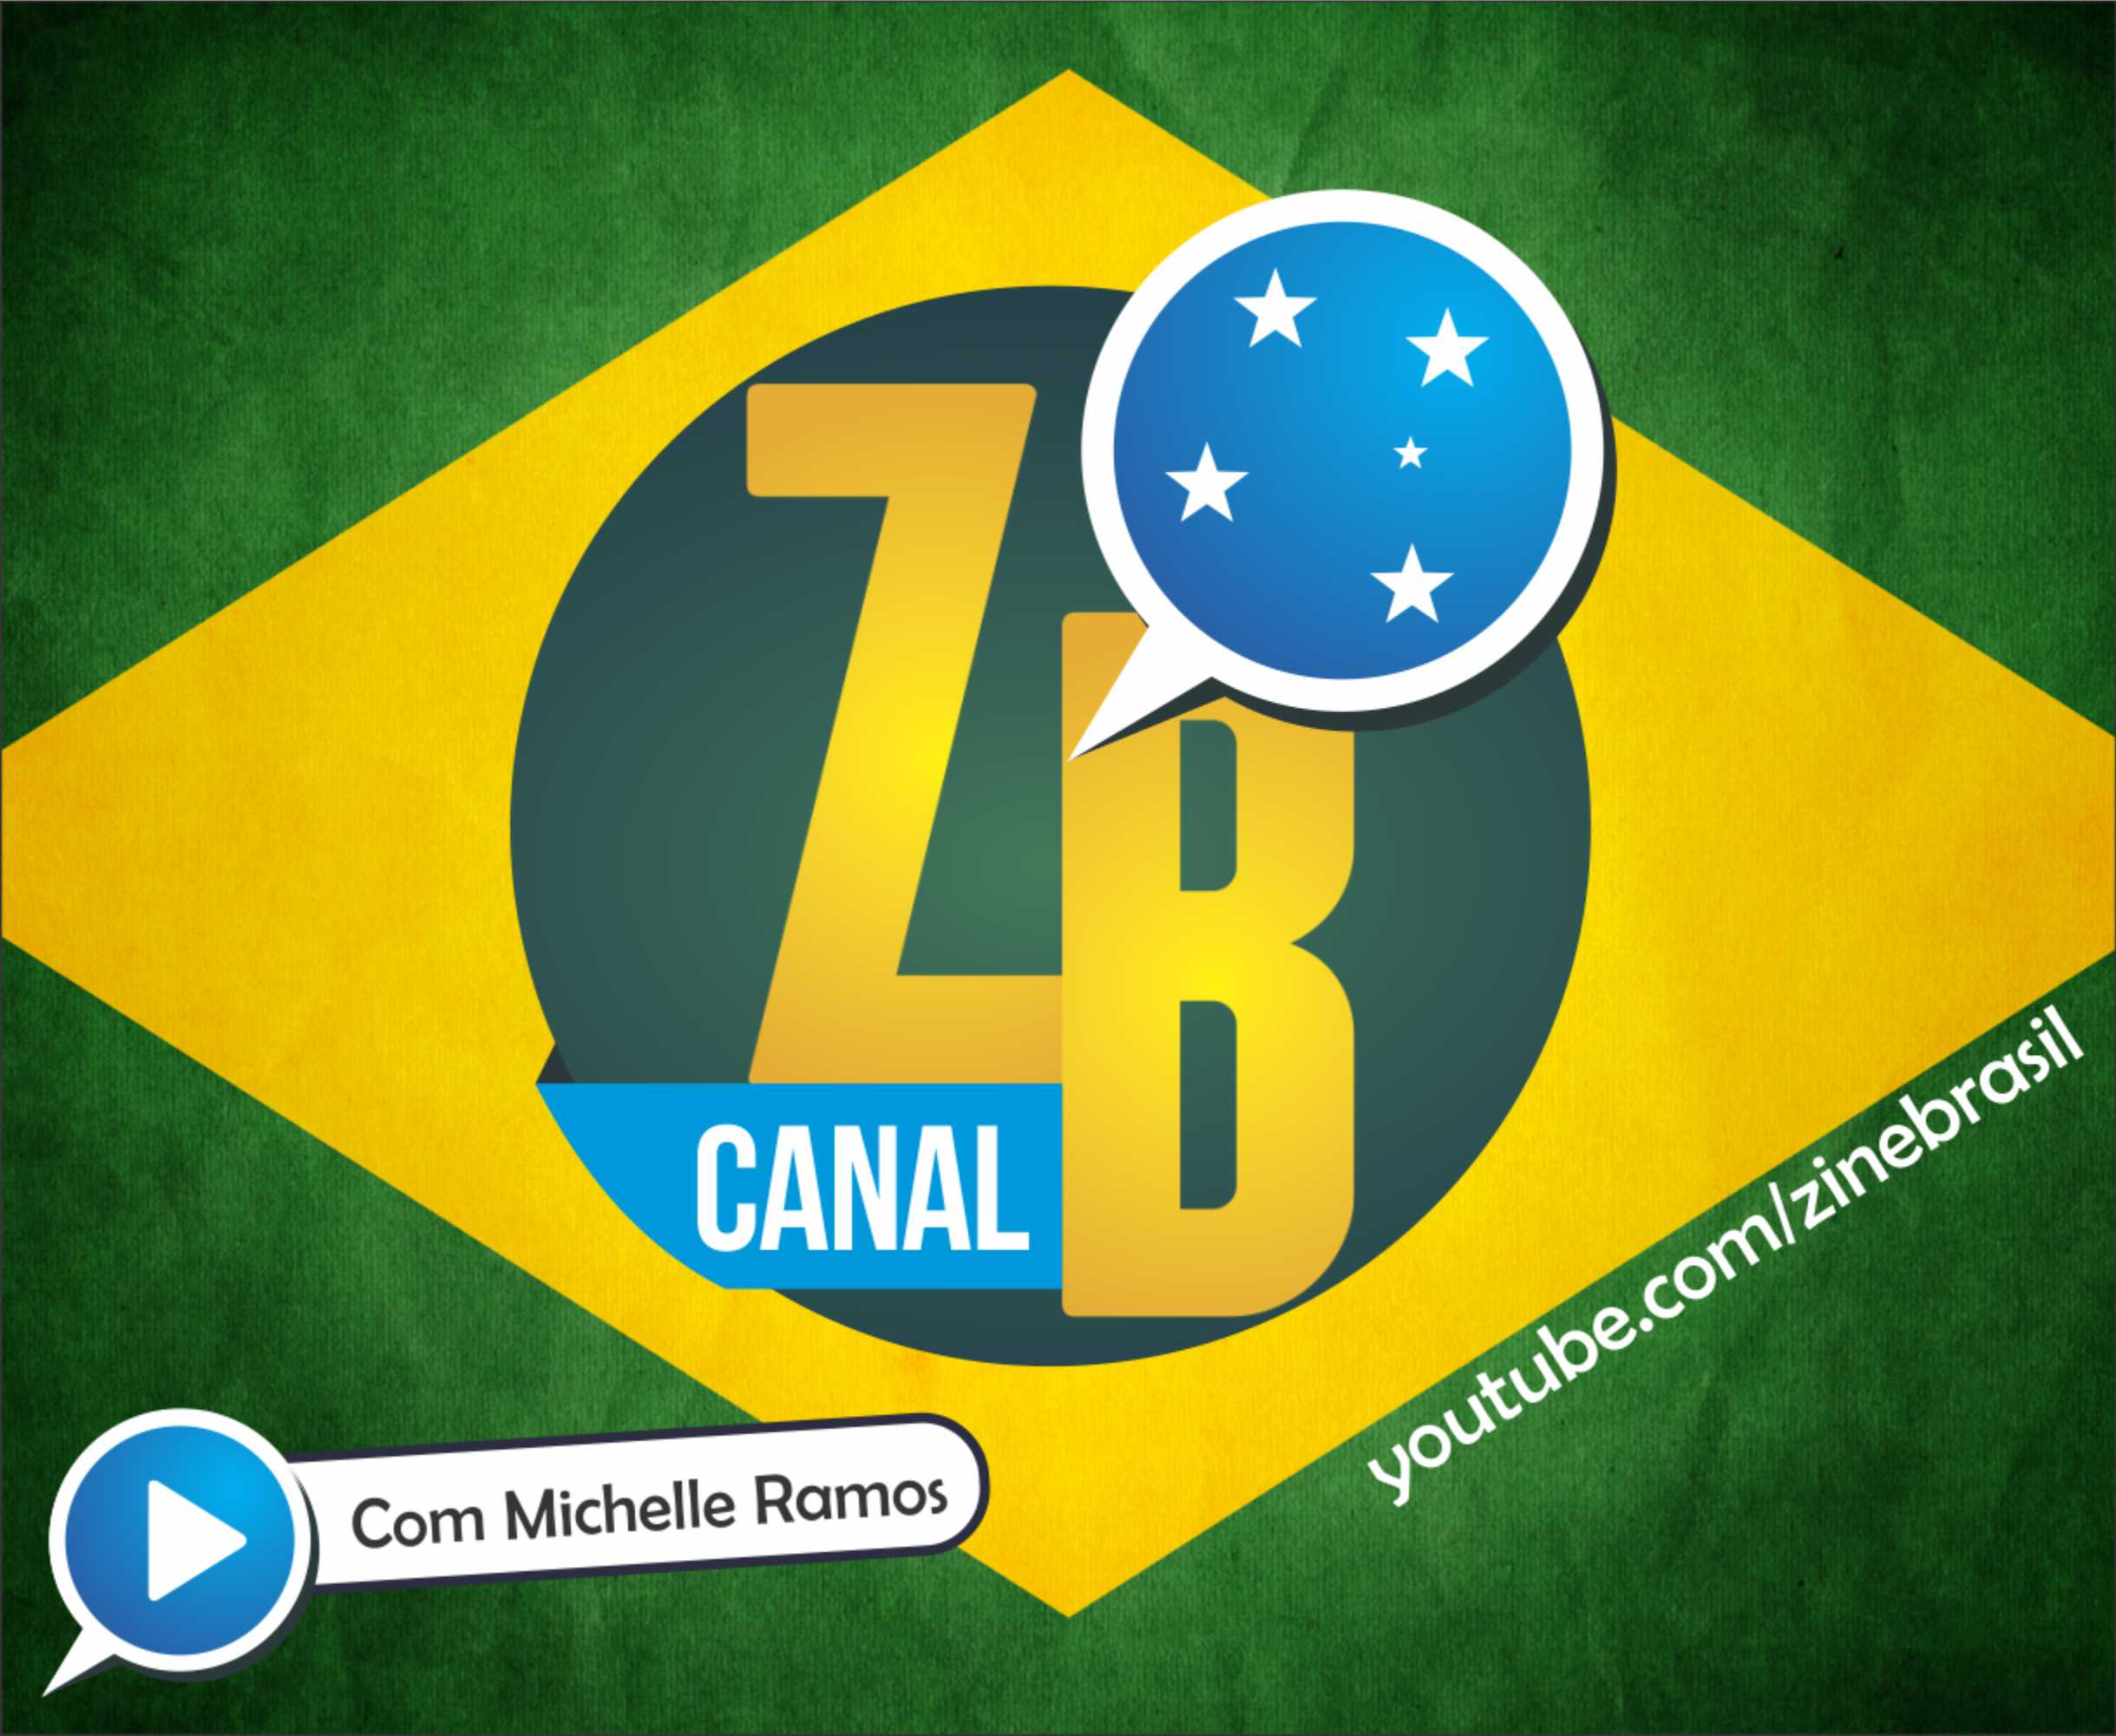 CANAL ZB 2015-blog